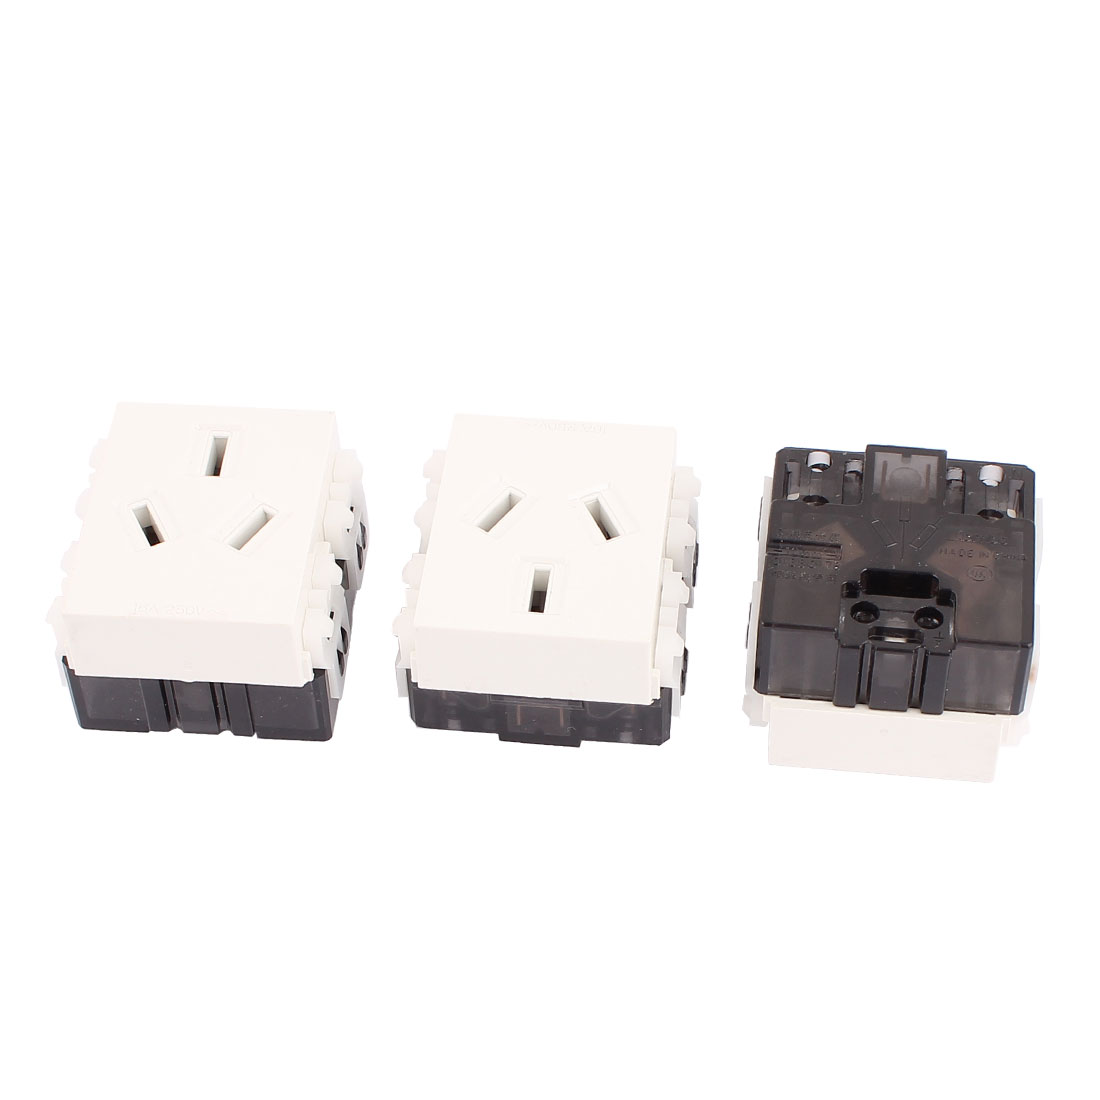 3 Pcs AC 250V 16A AU Socket Electrical Modular Power Outlet for 86 Wall Plate Panel